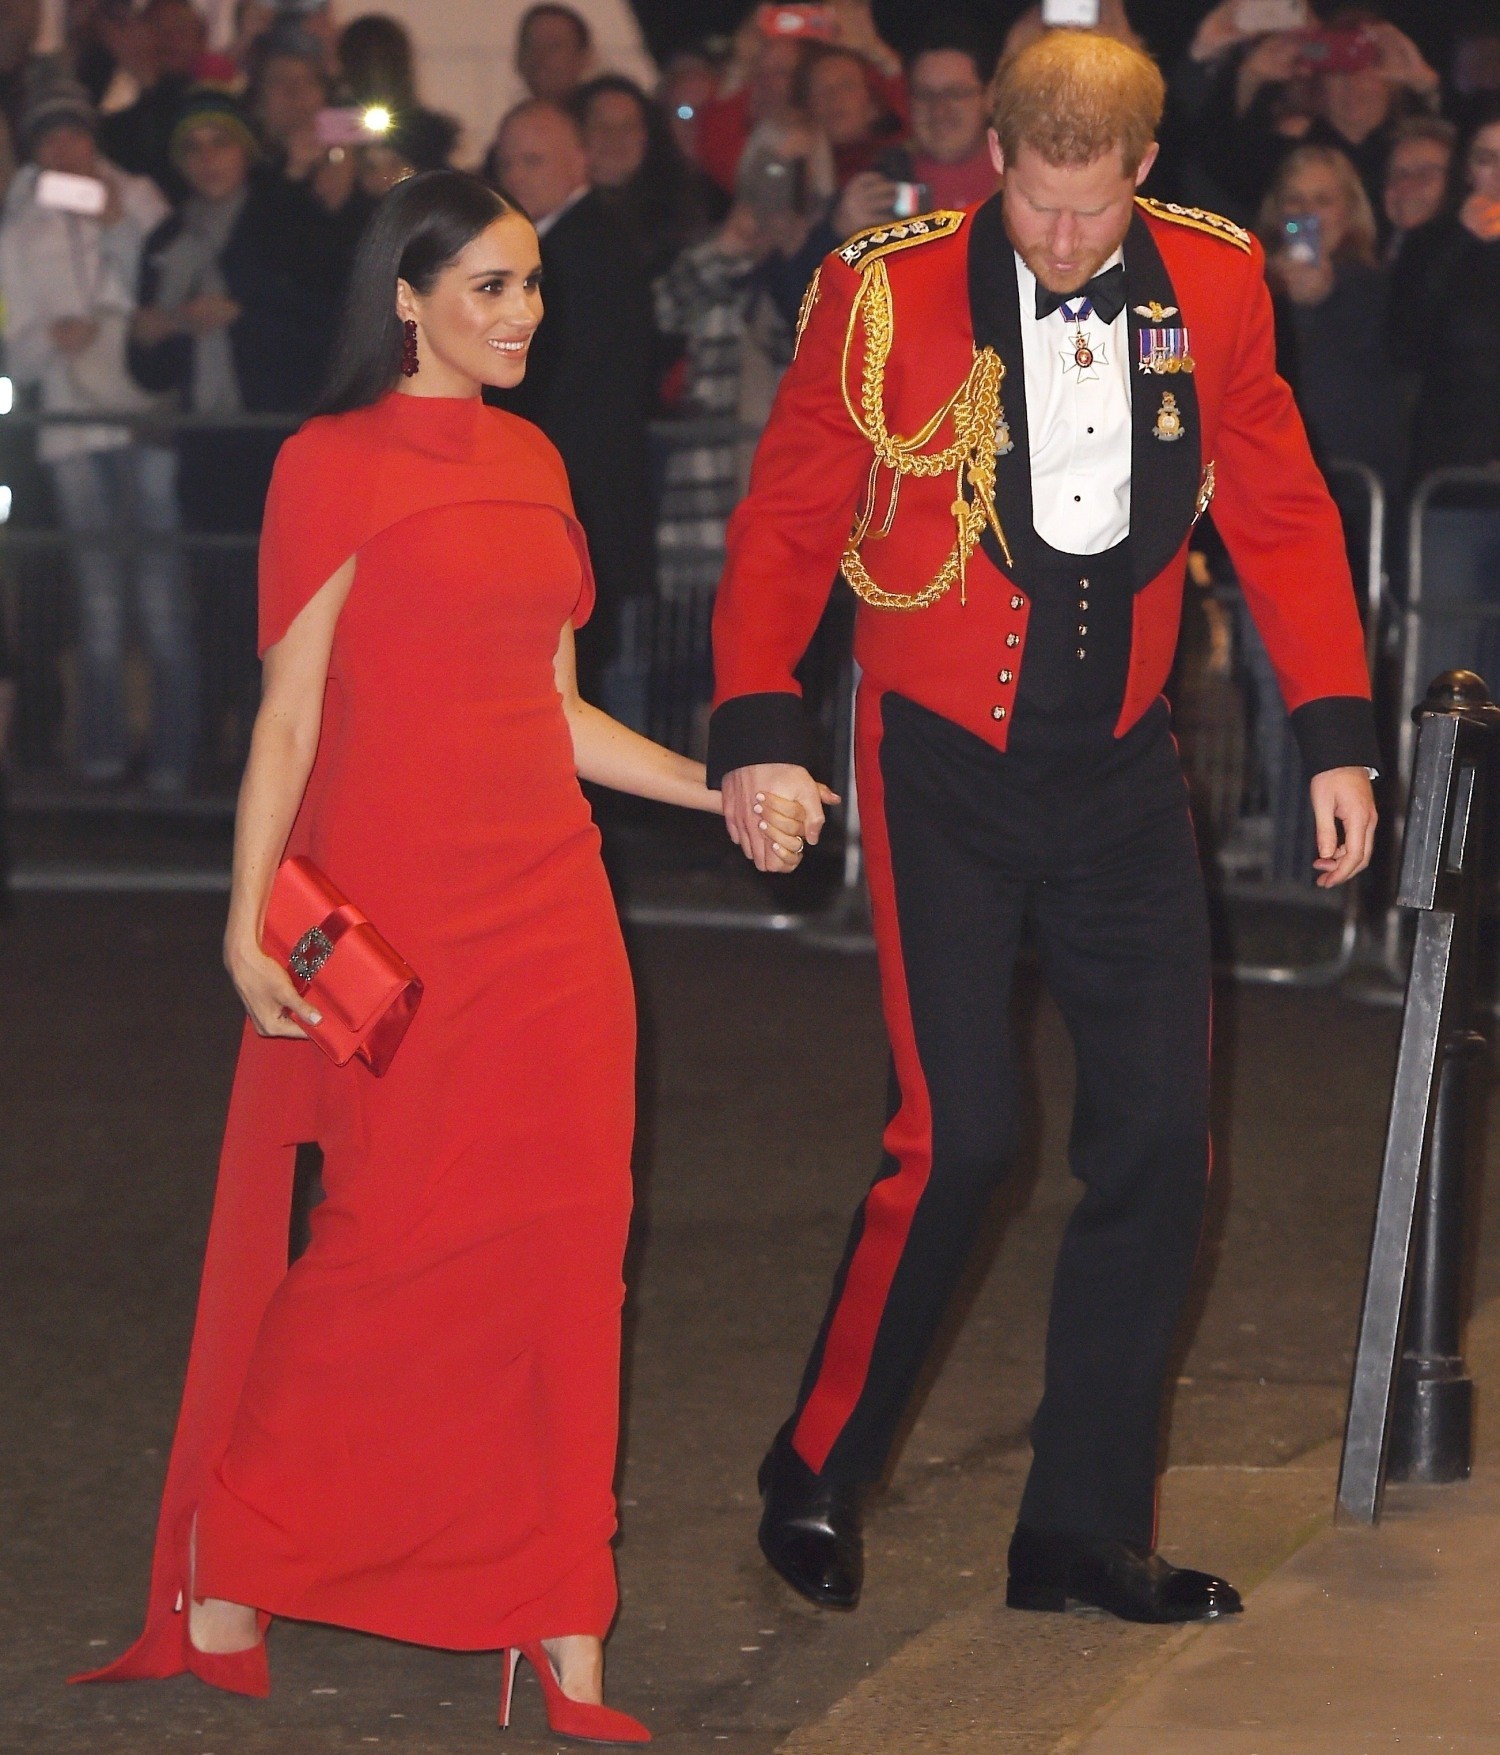 The Duke and Duchess of Sussex are pictured during their arrival at The Mountbatten Festival of Music